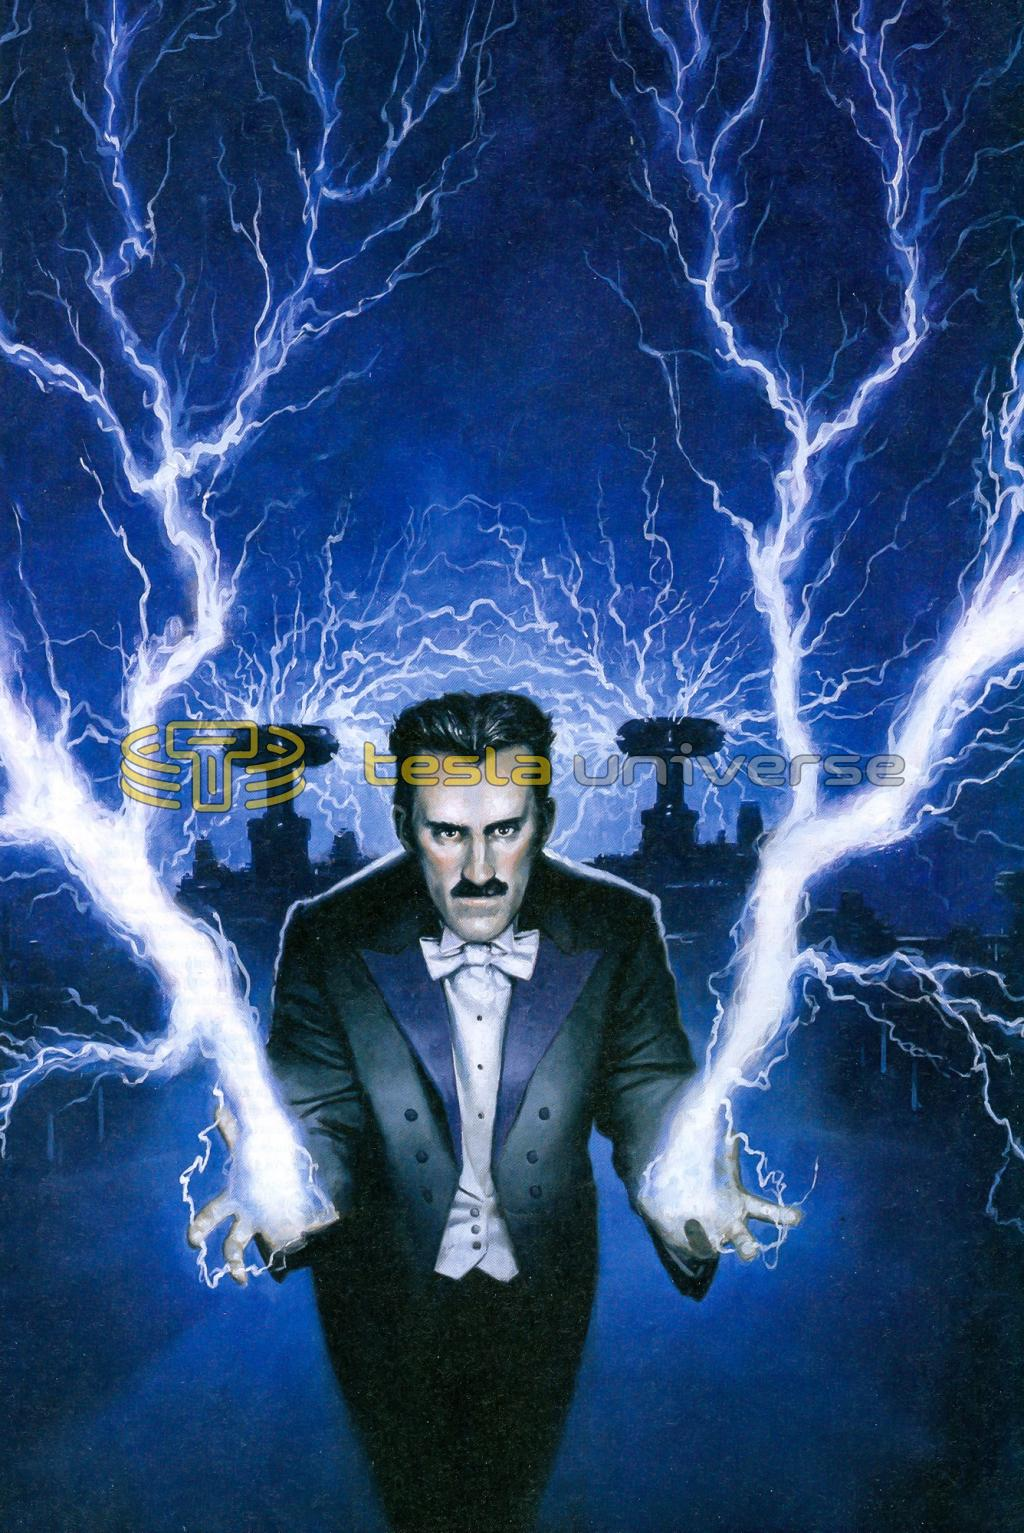 Ominous drawing of Nikola Tesla shooting lightning from his hands